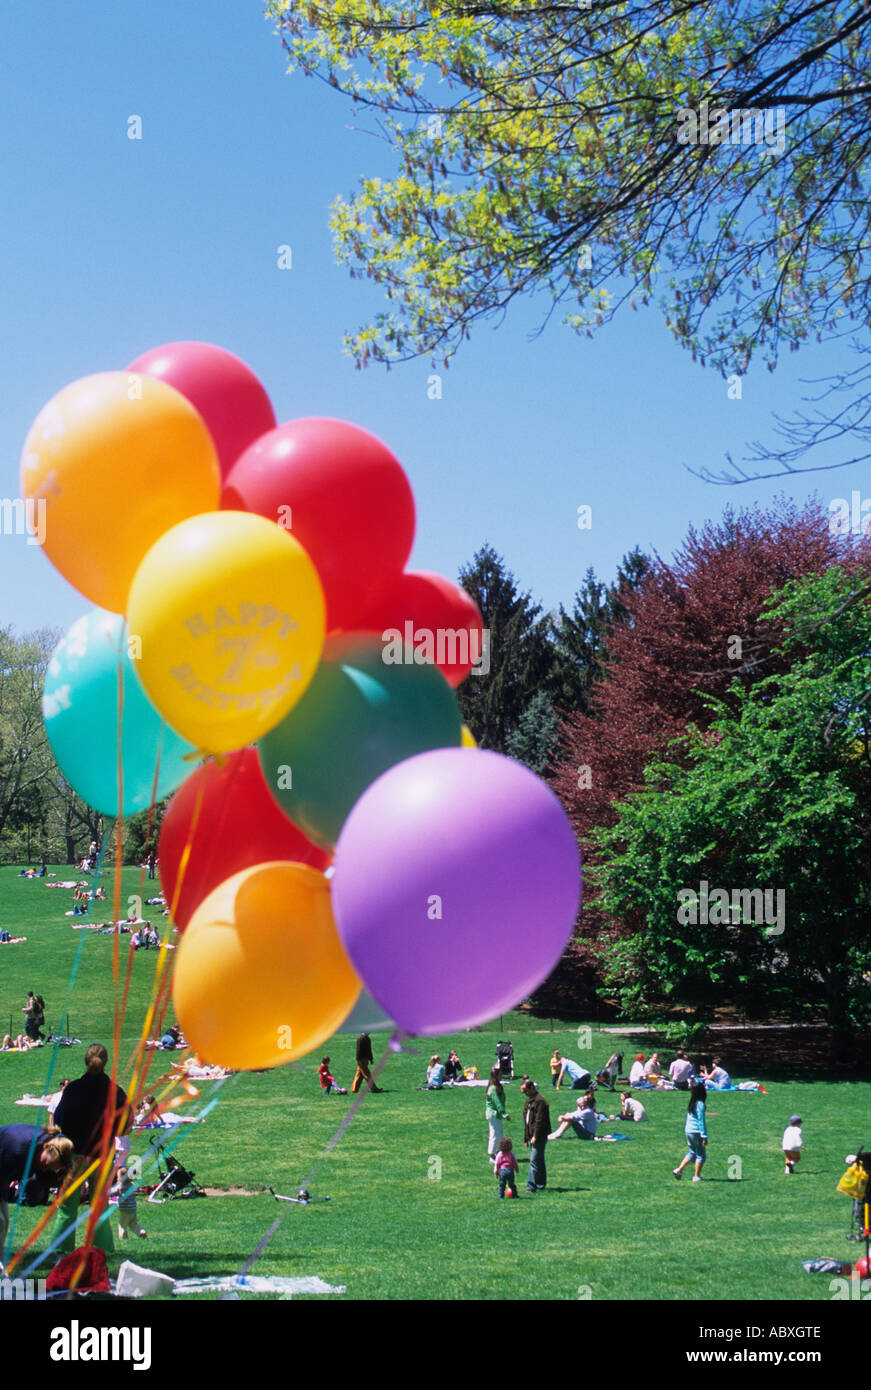 New York City Balloons At Birthday Party In Central Park On Cedar Hill Lawn The Spring